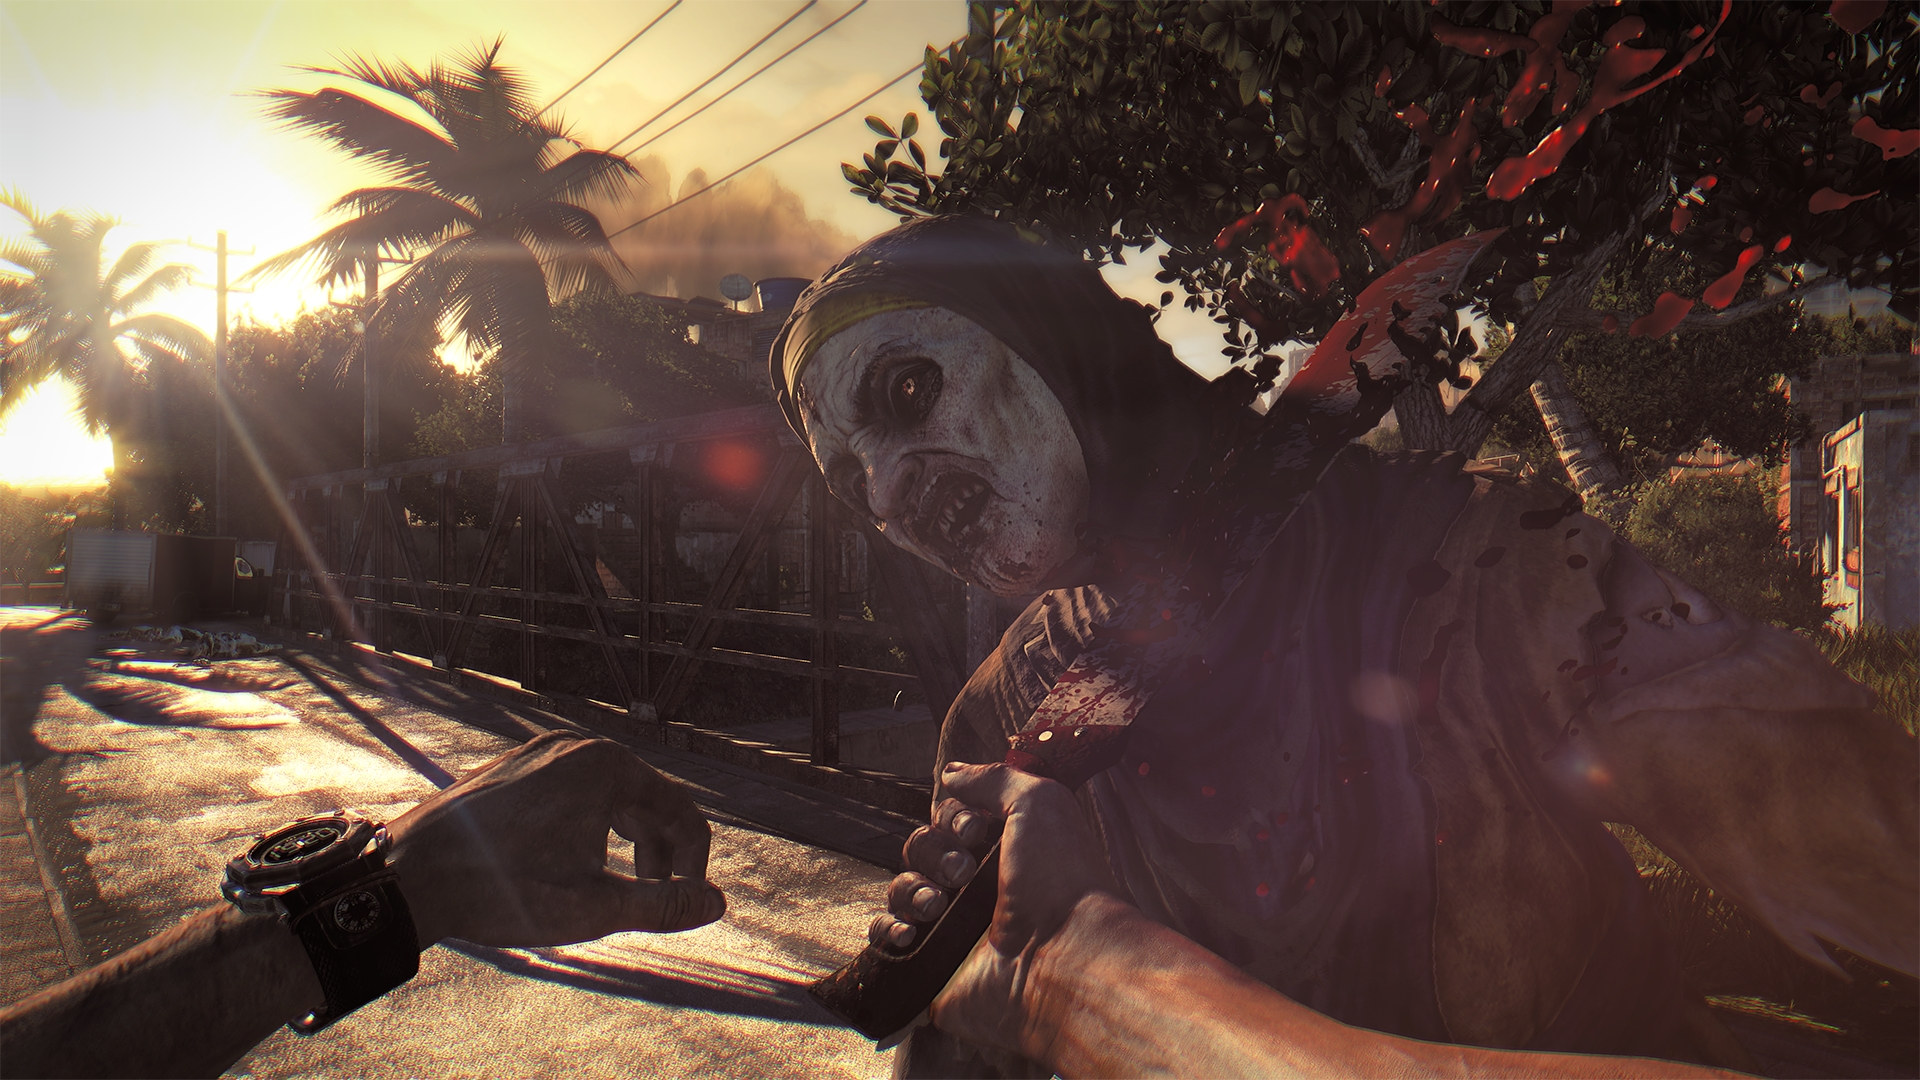 Dying Light: Will The Major Features Work?